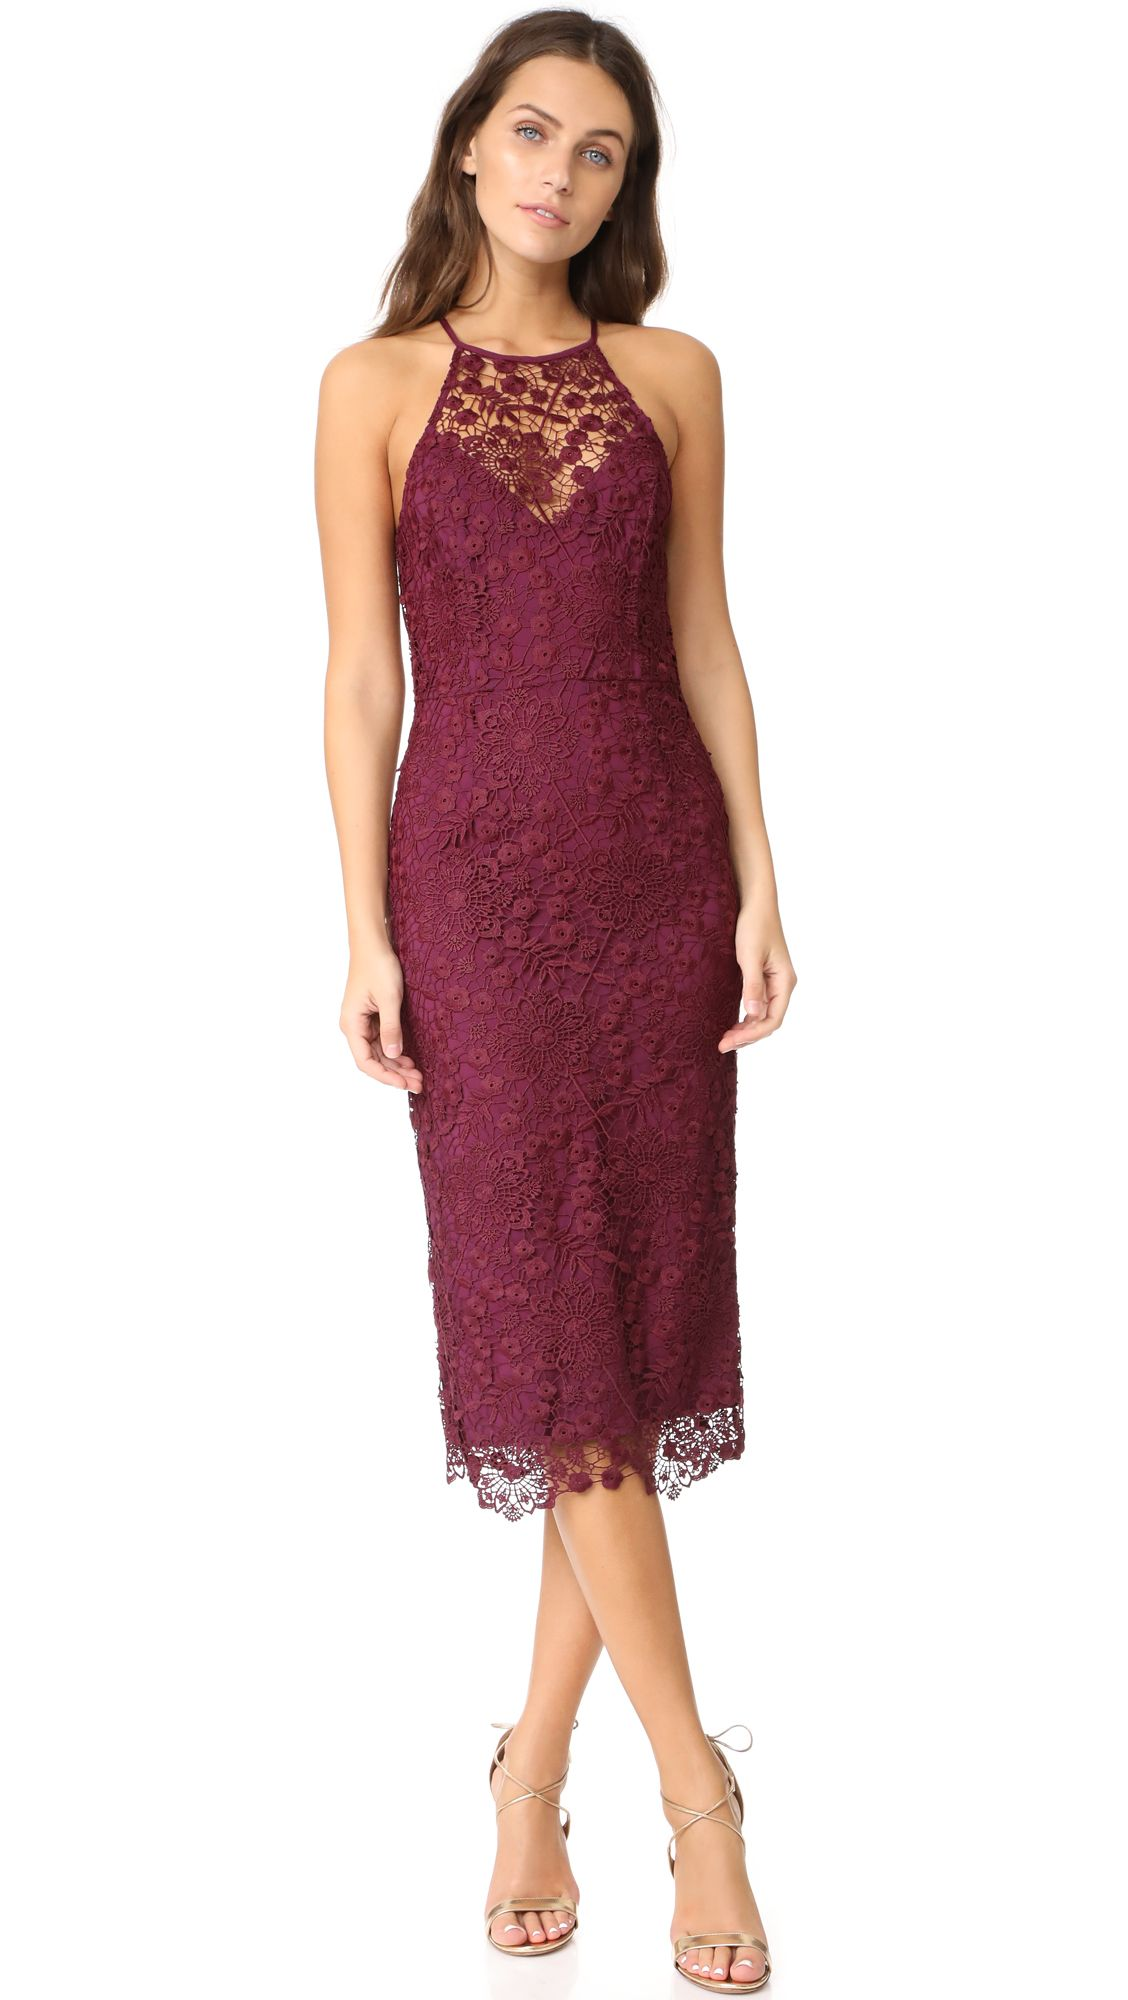 This Beautiful Wine Colored Off The Shoulder Gown Makes For A Beautiful Long Burgundy B Designer Dresses Casual Cocktail Dress Lace Wine Color Bridesmaid Dress [ 2000 x 1128 Pixel ]